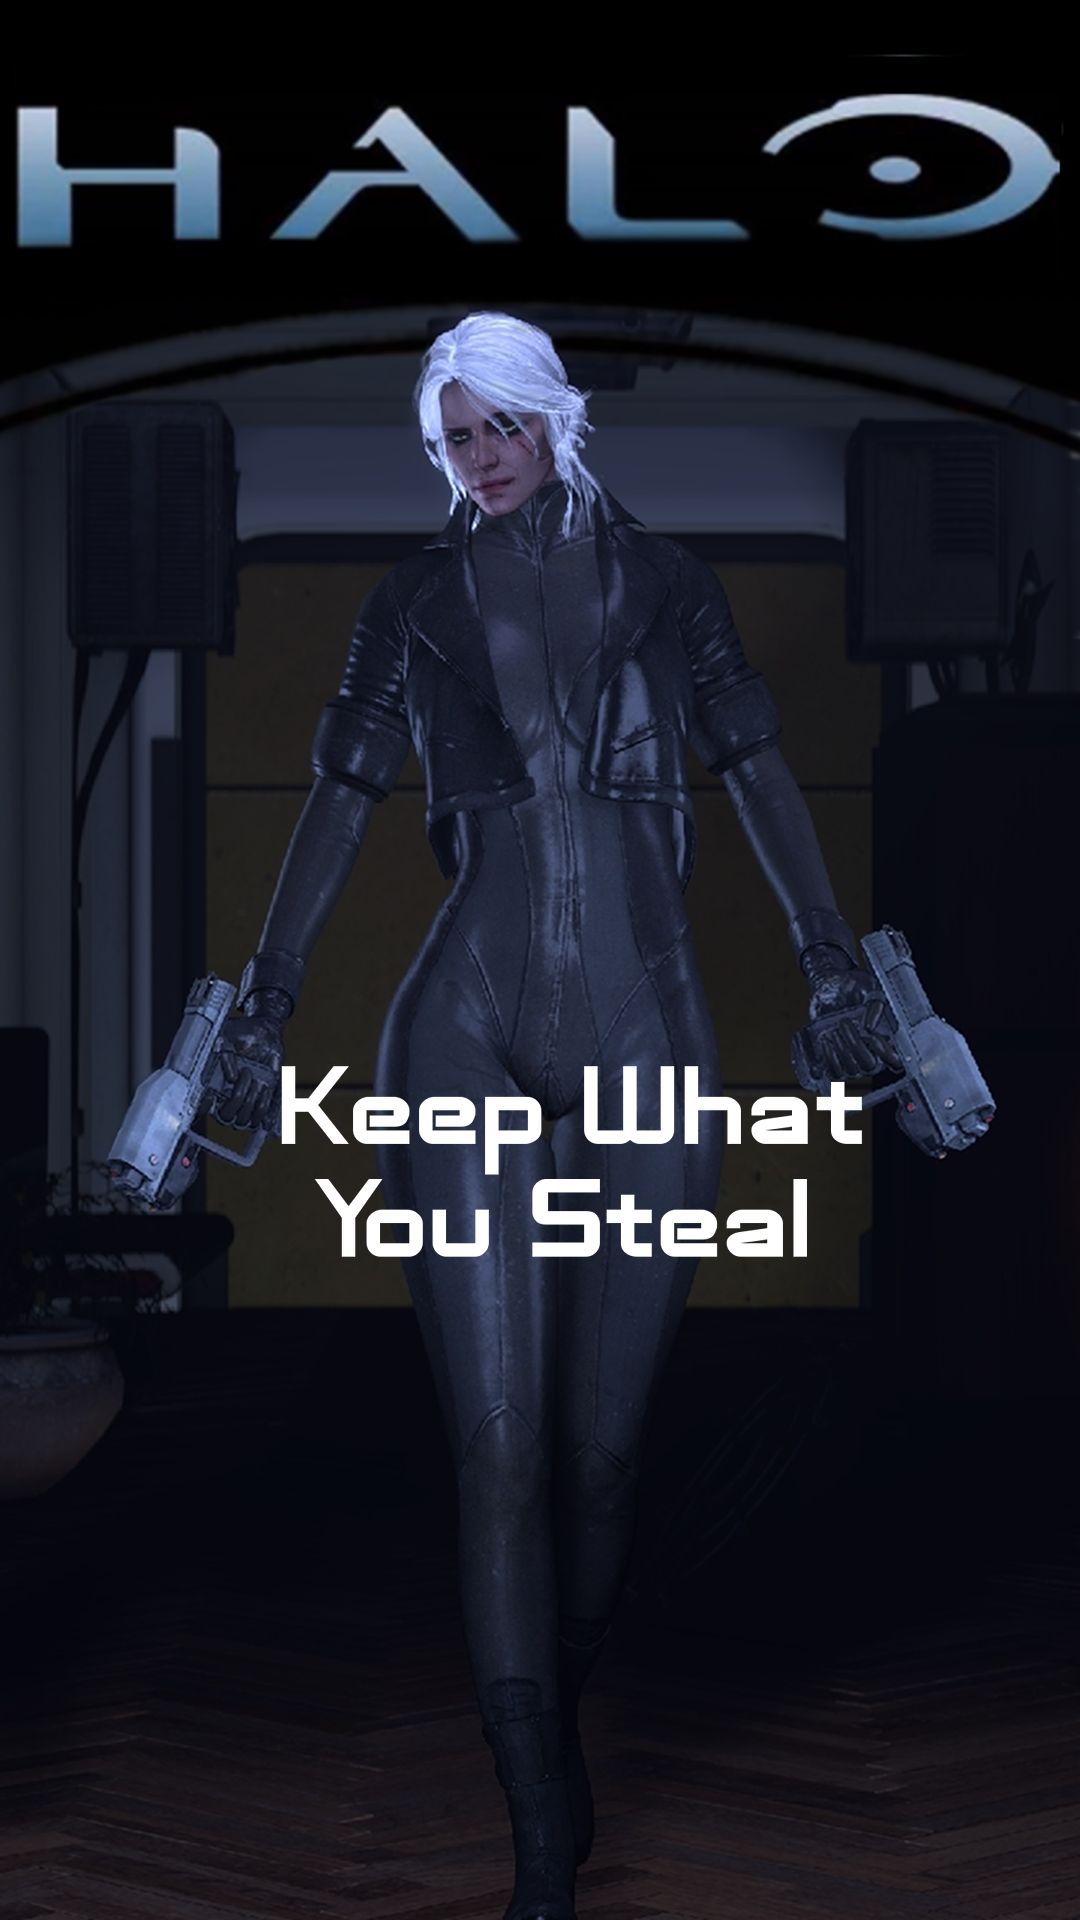 Keep what you Steal